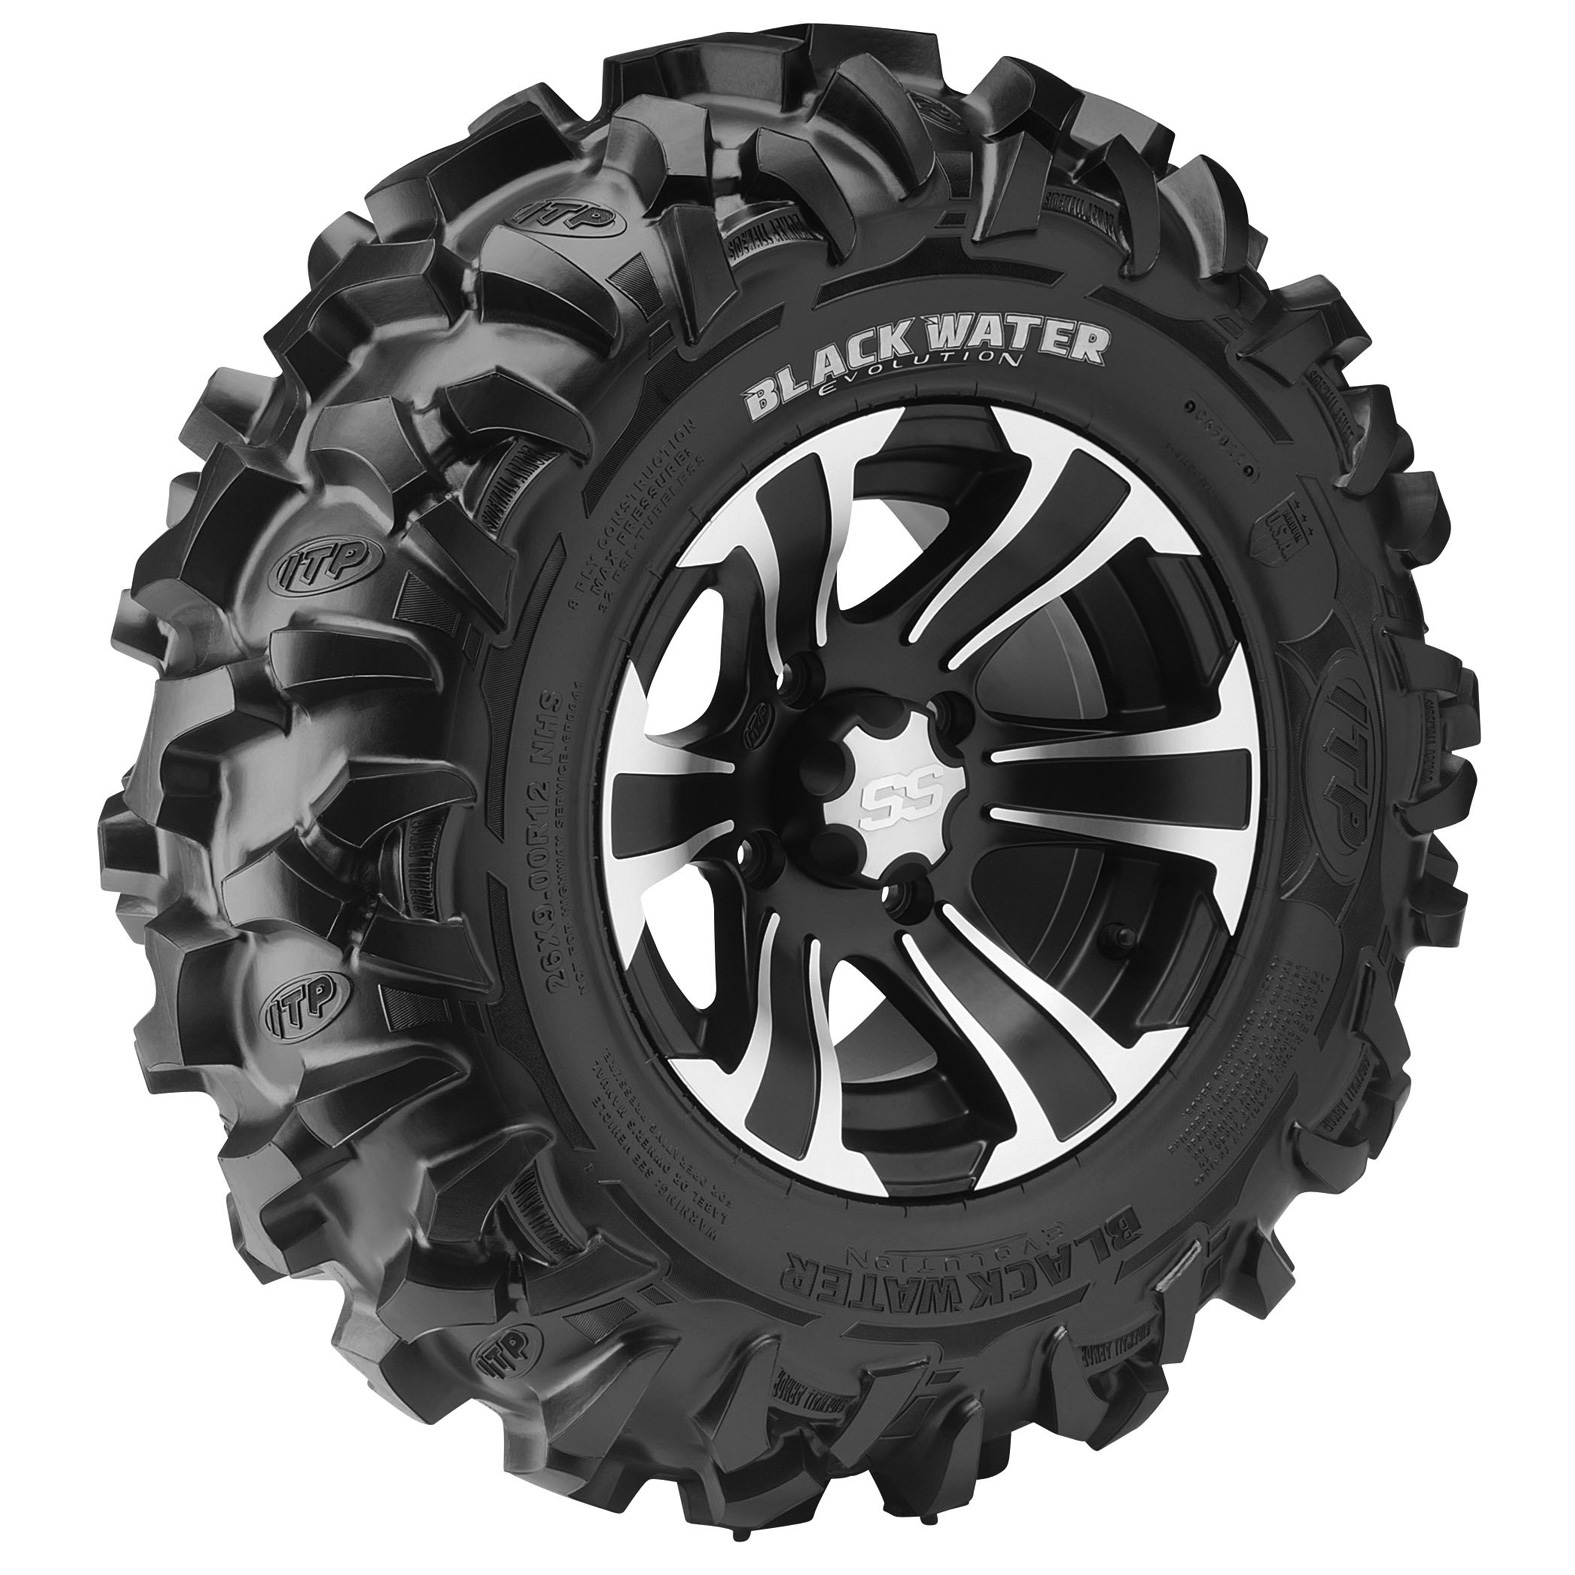 ITP Blackwater Evolution ATV Tire - Angle